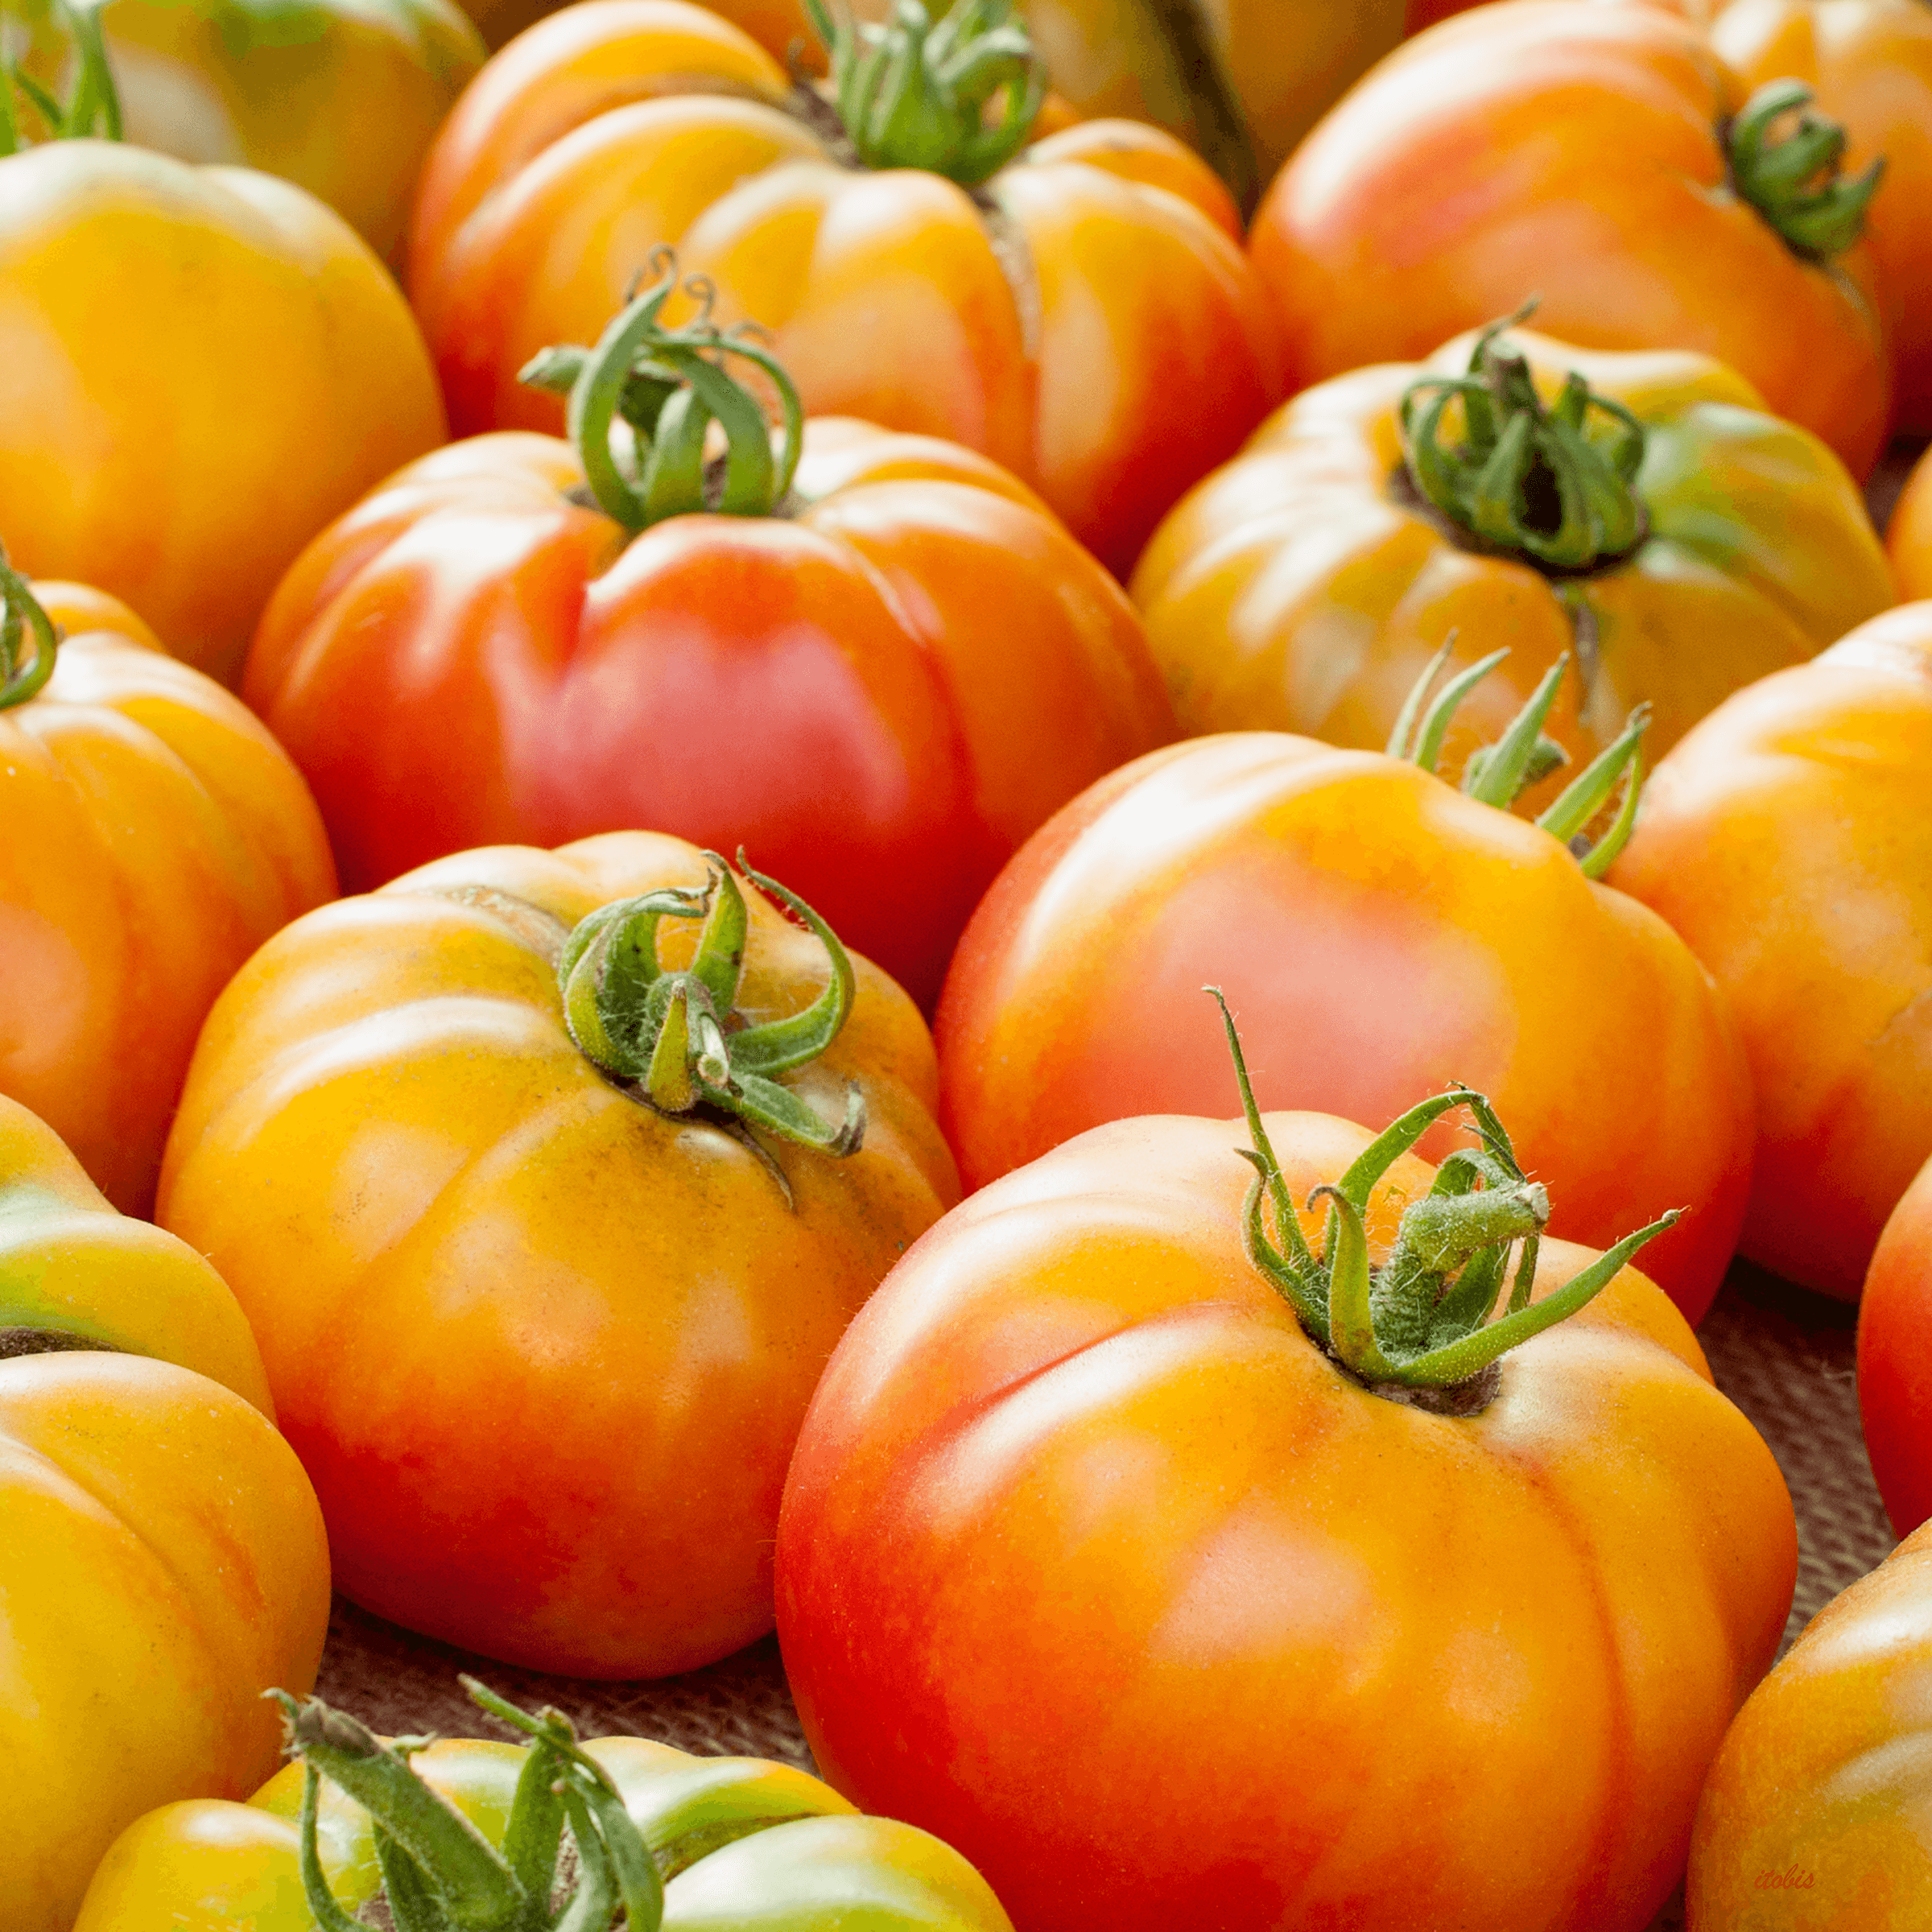 Tomatoes at the Market - Bramble Lea Farm - Beechwood Farmers' Market, Ottawa, Ontario - photo by Irene Tobis